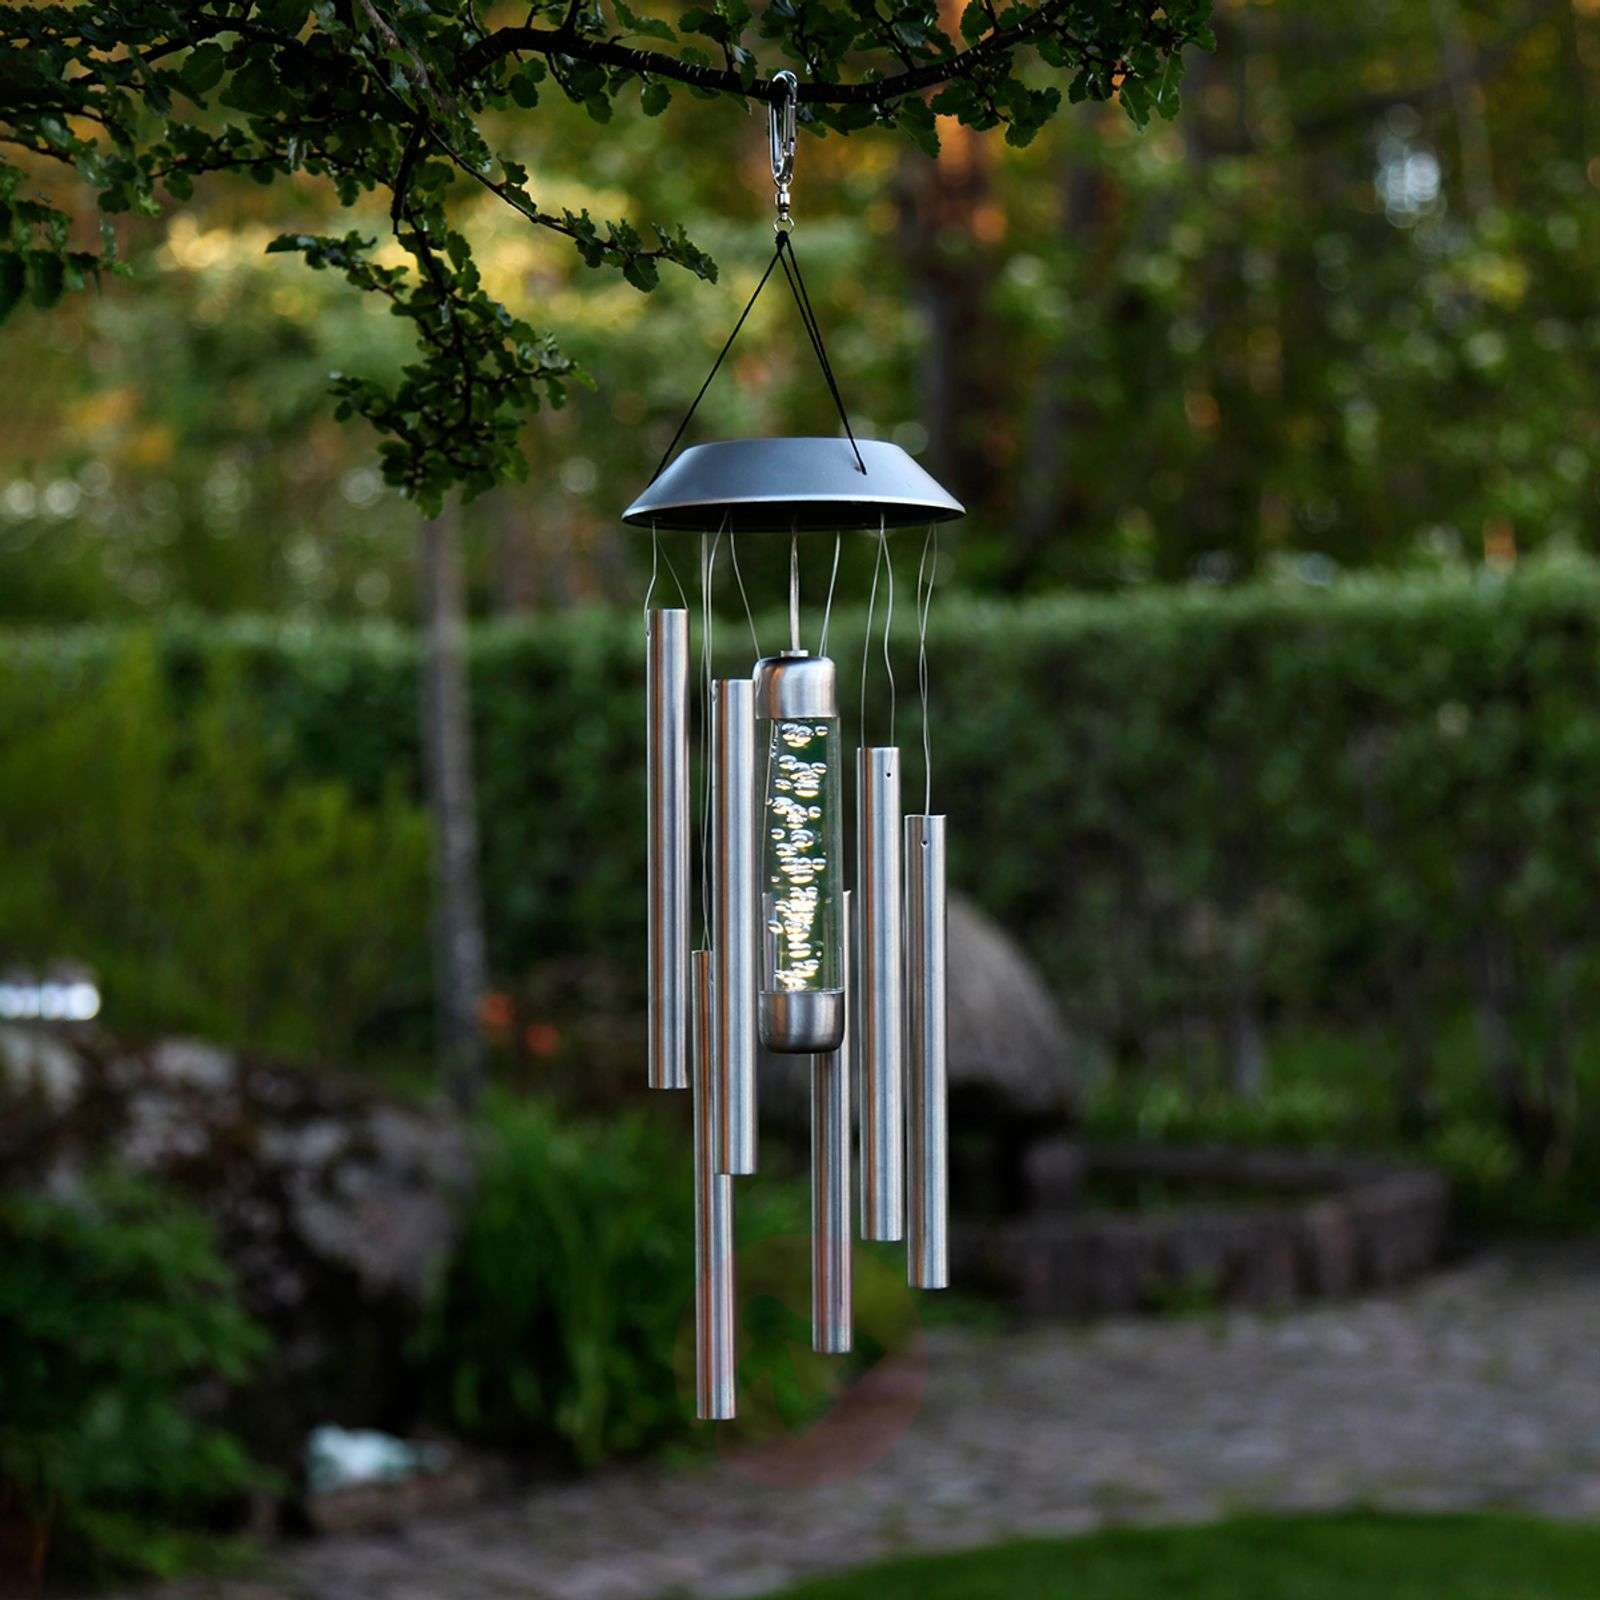 Bubbly decorative wind chime with lighting-1523085-01